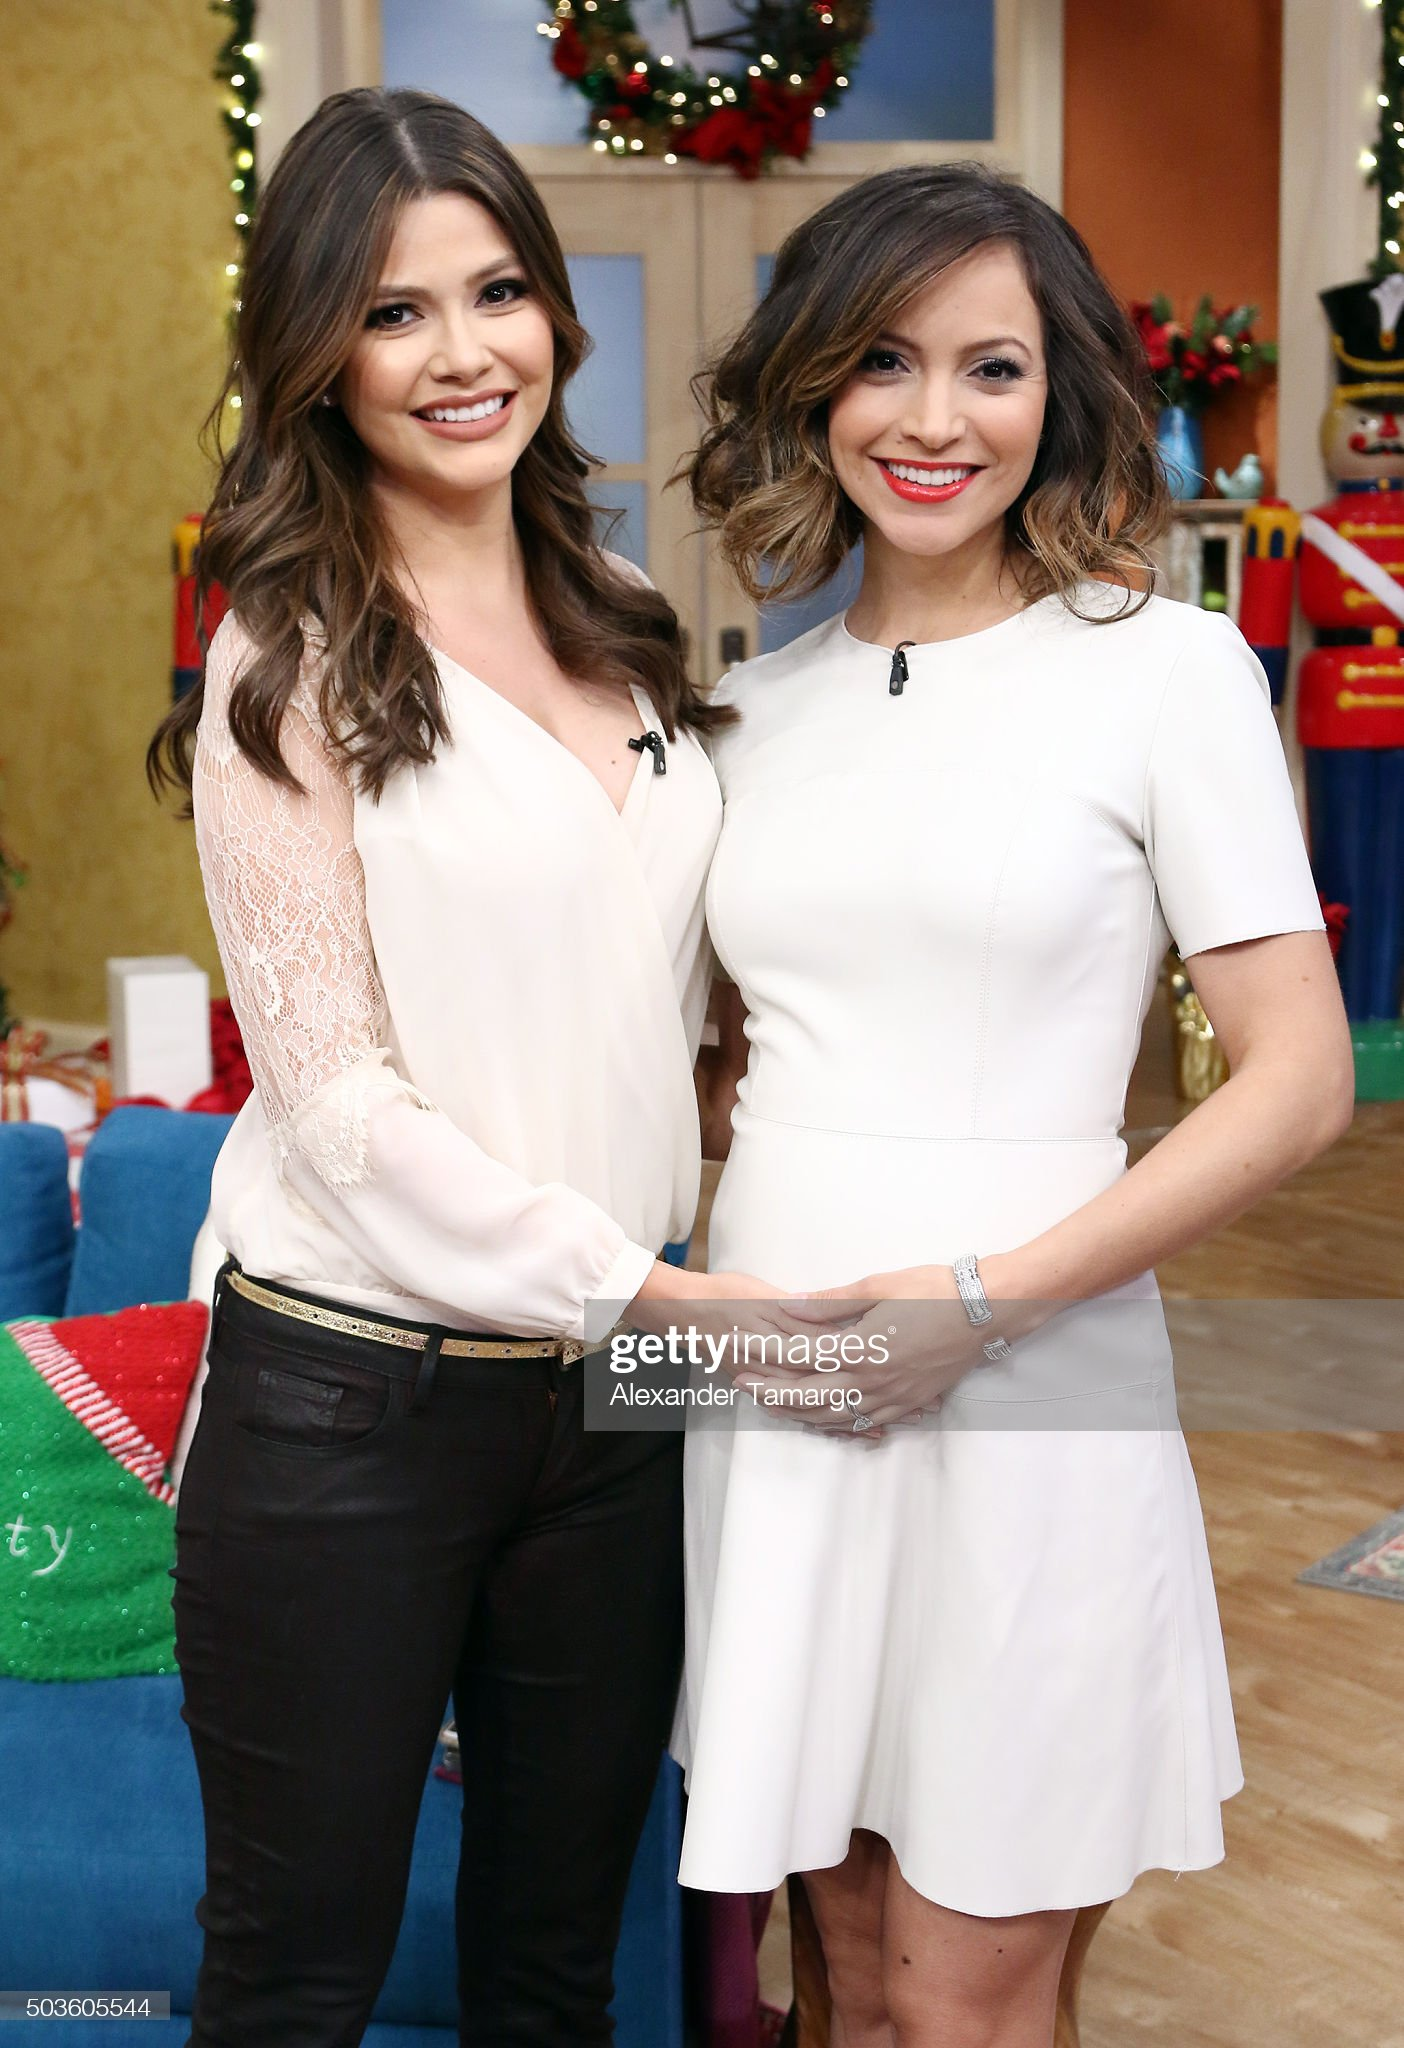 ¿Cuánto mide Ana Patricia Gámez? - Altura y peso - Height and weight Ana-patricia-gamez-and-satcha-pretto-are-seen-on-the-set-of-despierta-picture-id503605544?s=2048x2048